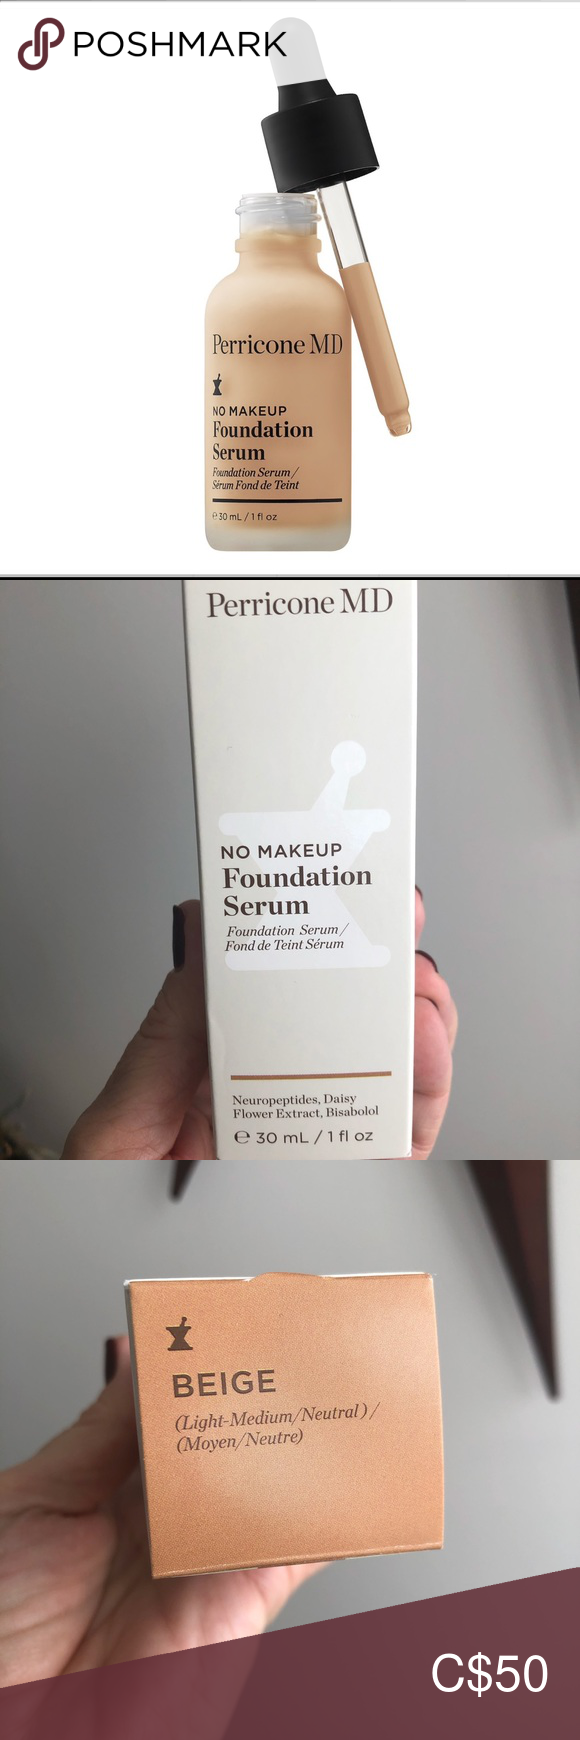 Perricone MD No Makeup Foundation Serum Beige in 2020